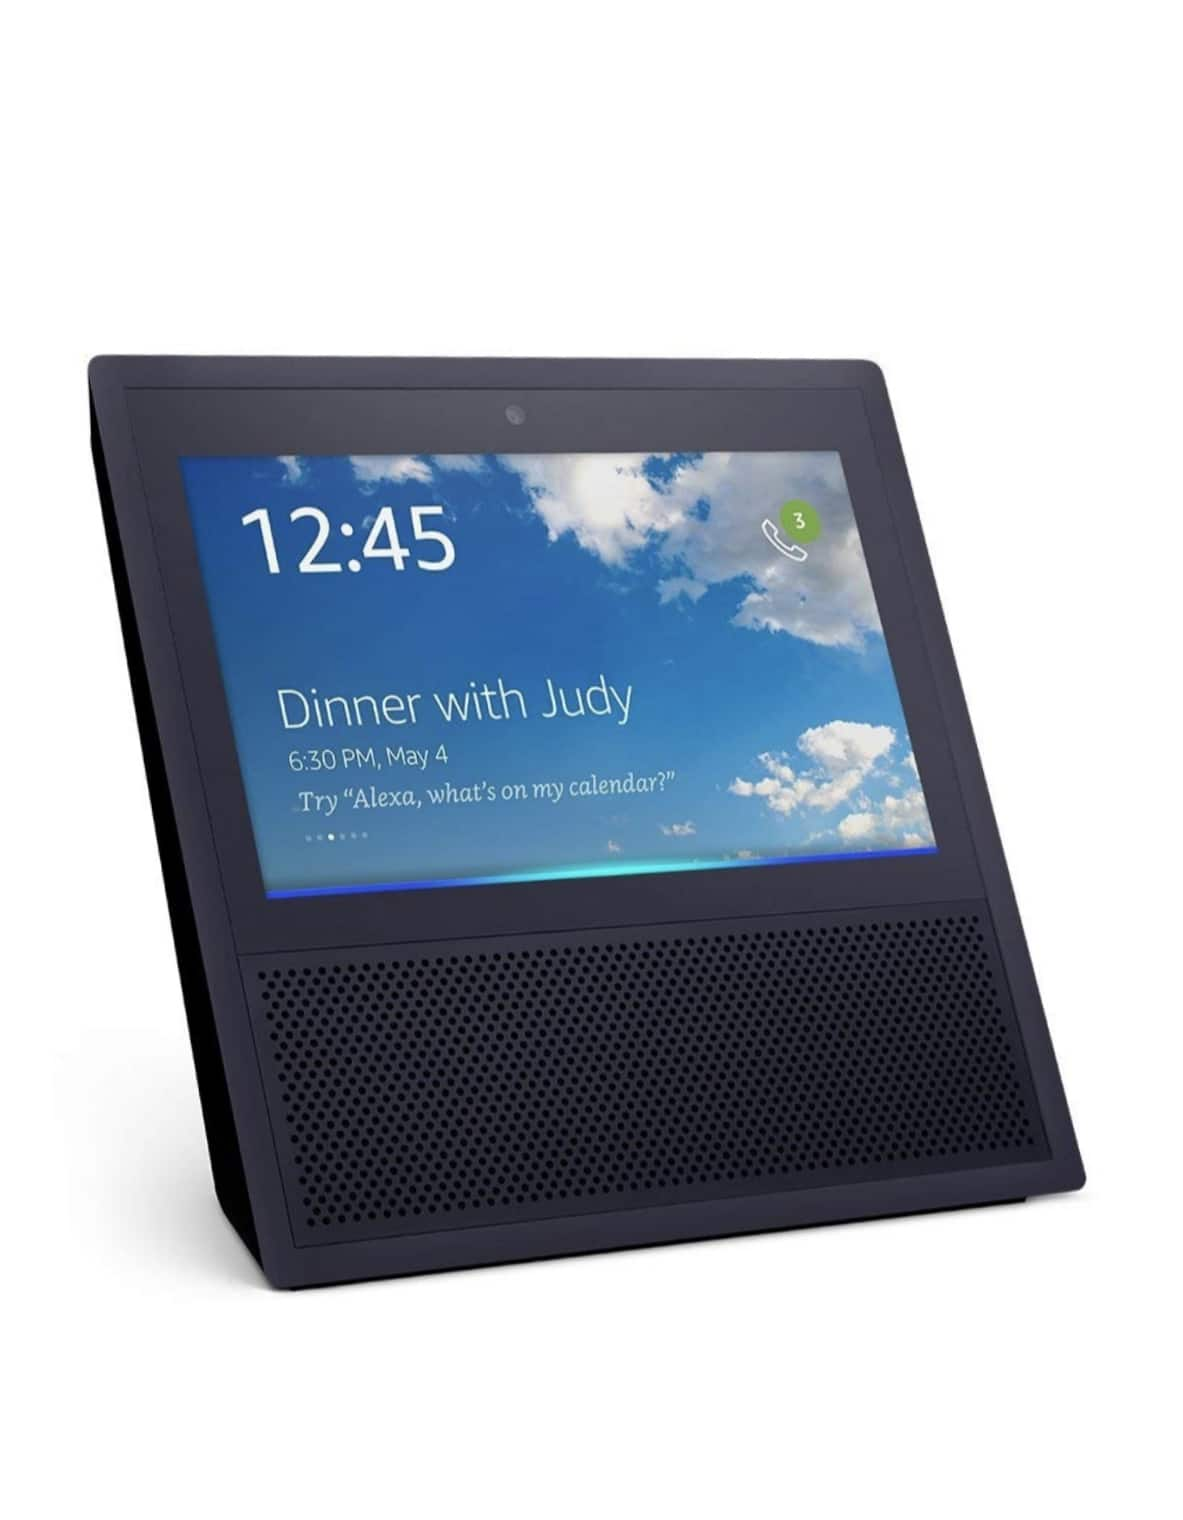 Amazon Echo Show 1st Generation In Used - Good Condition $49.99 on Woot